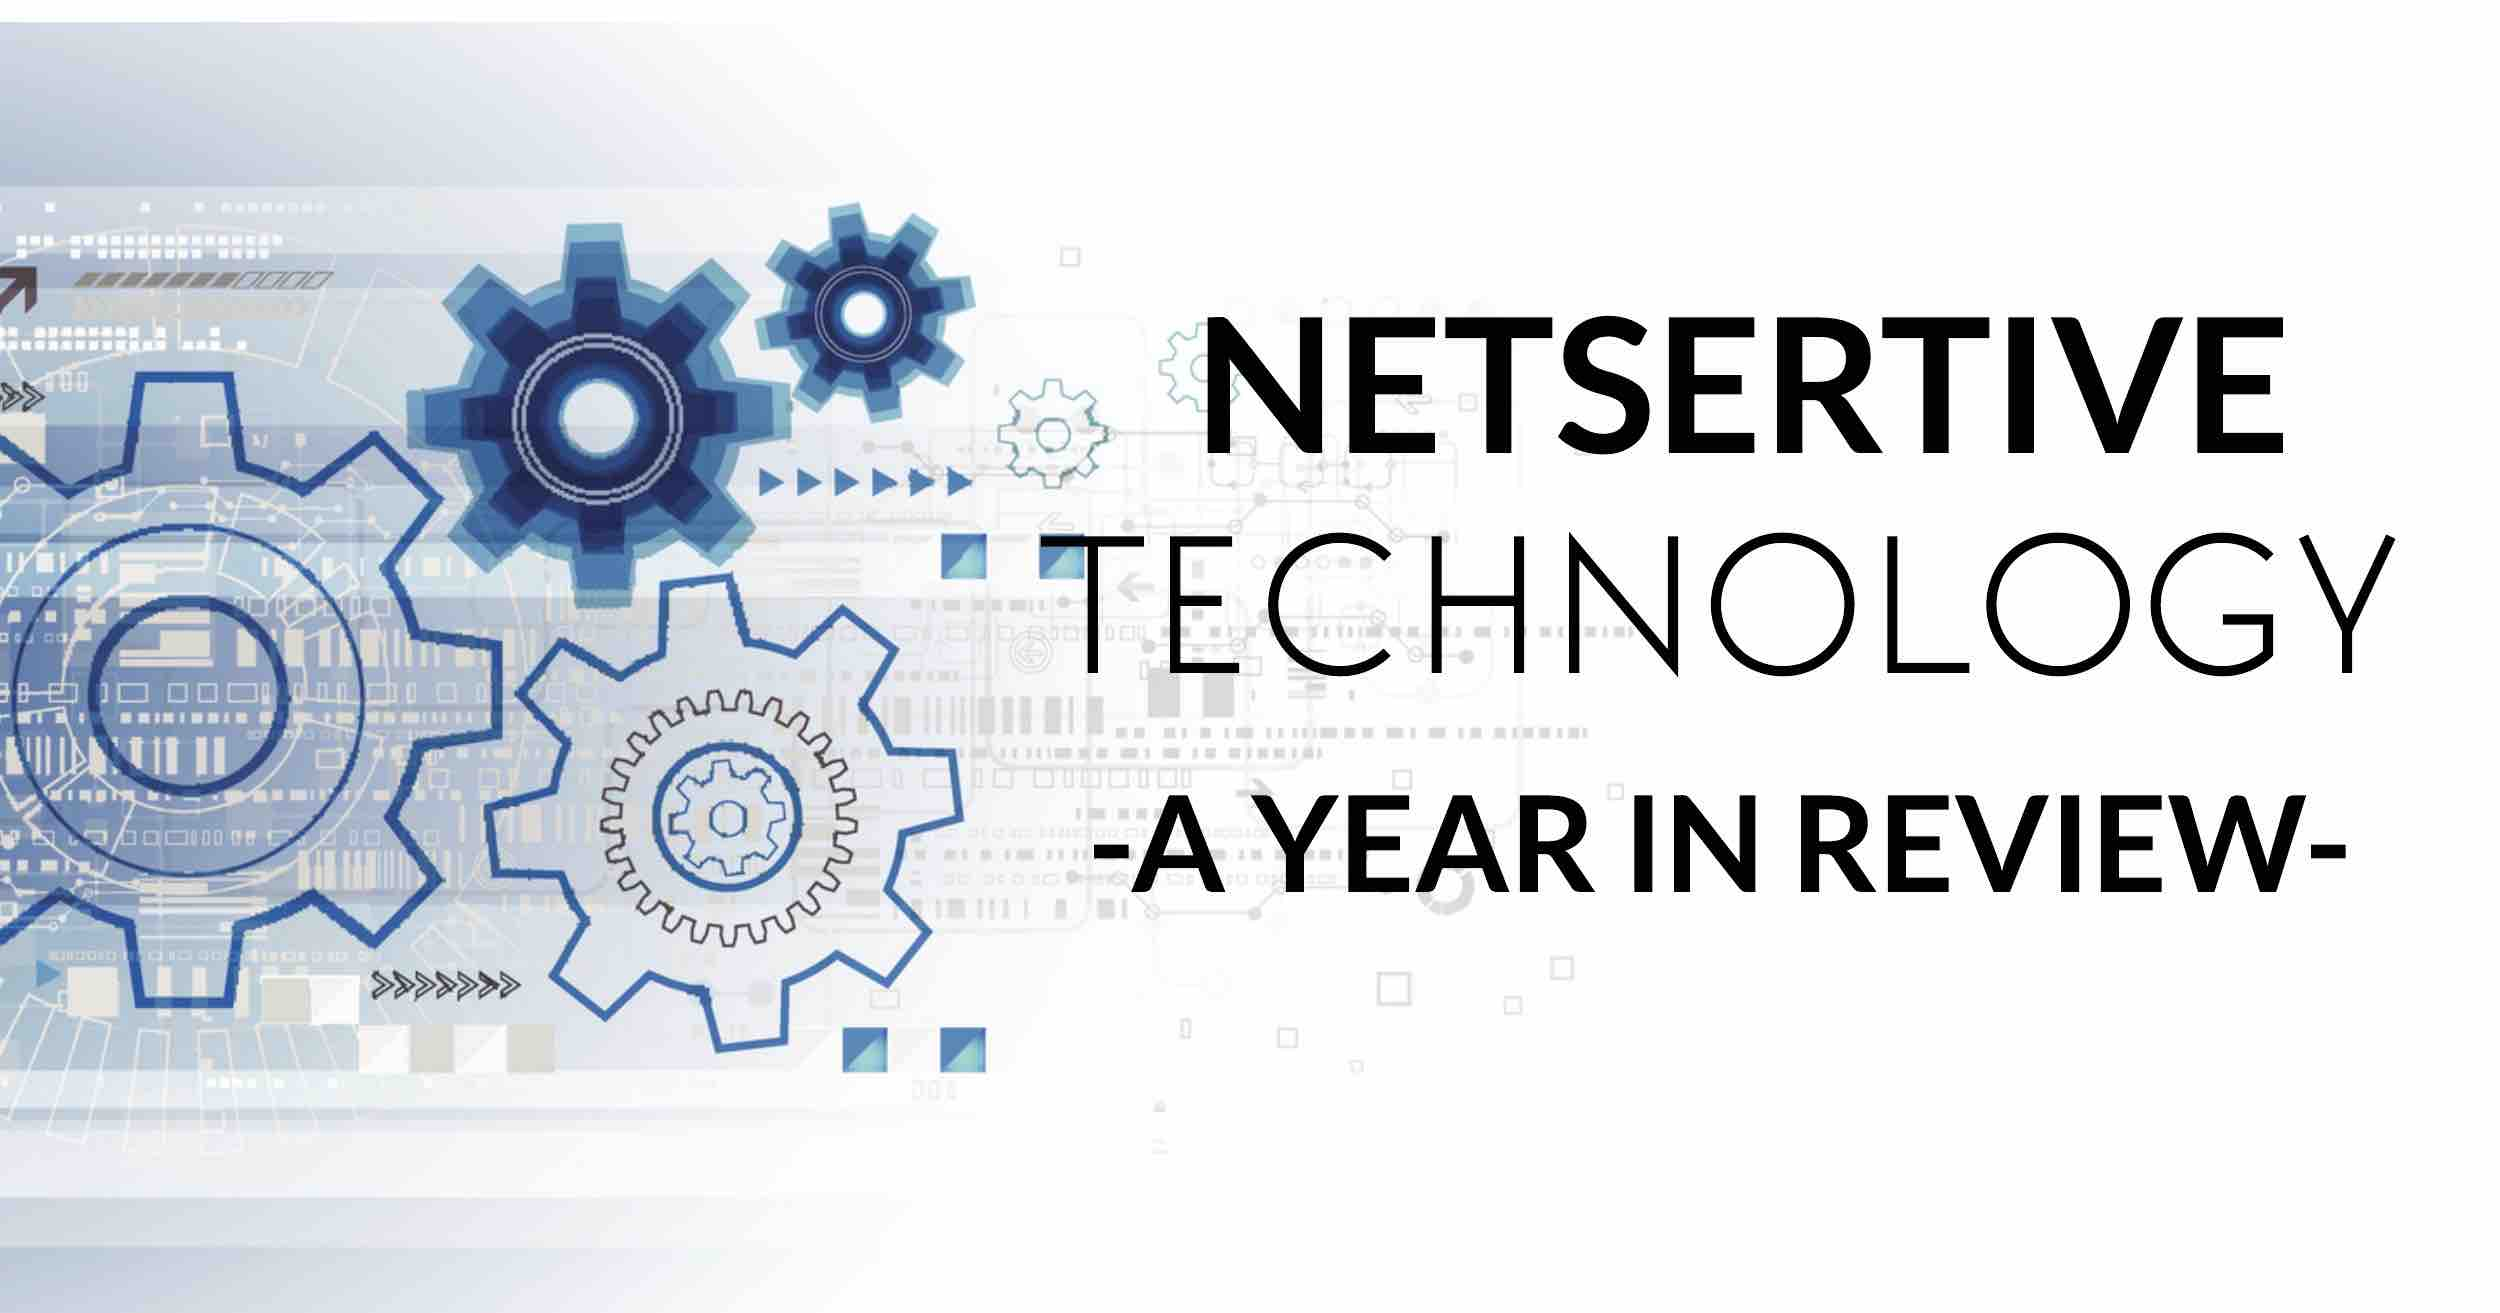 Netsertive Technology